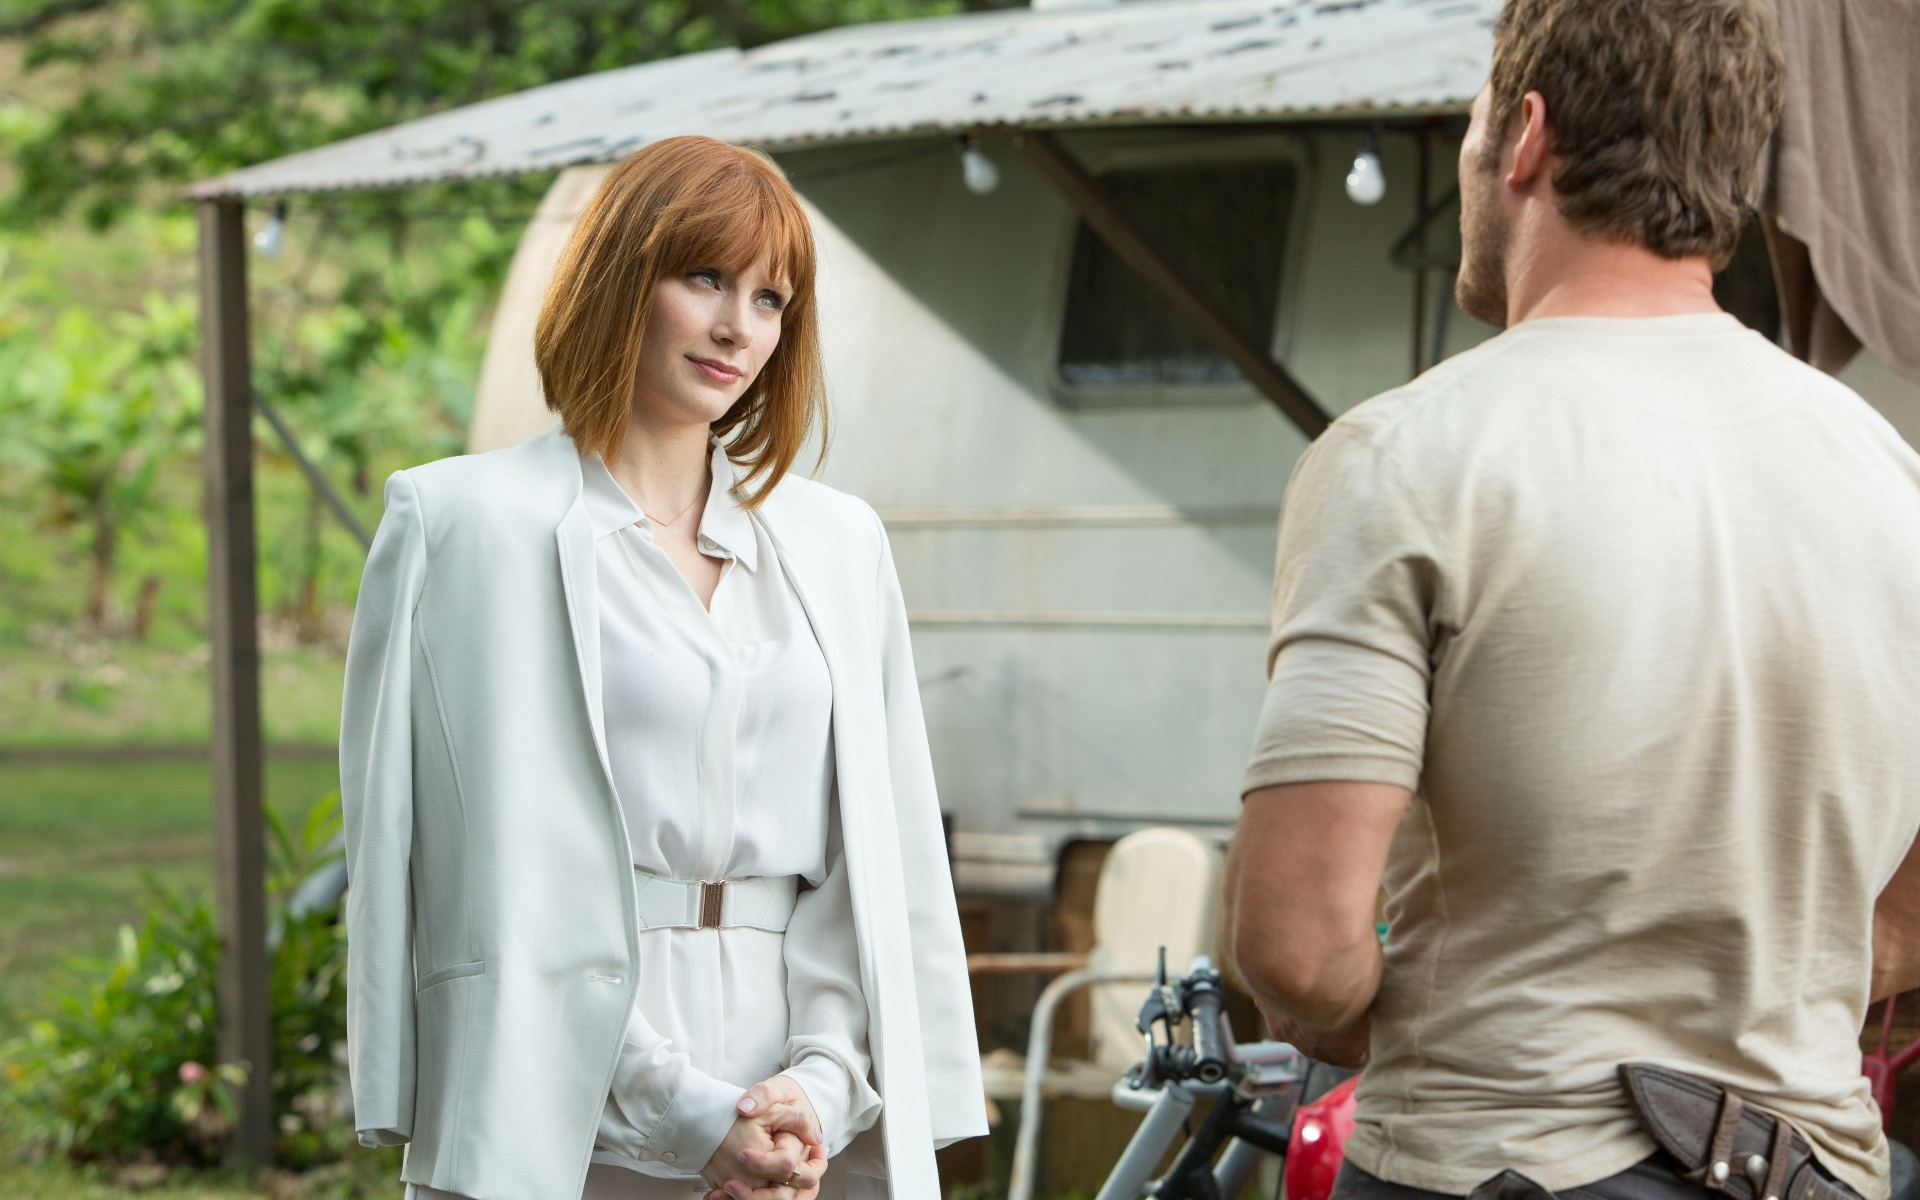 Jurassic_world_fond_d_ecran_HD.jpg